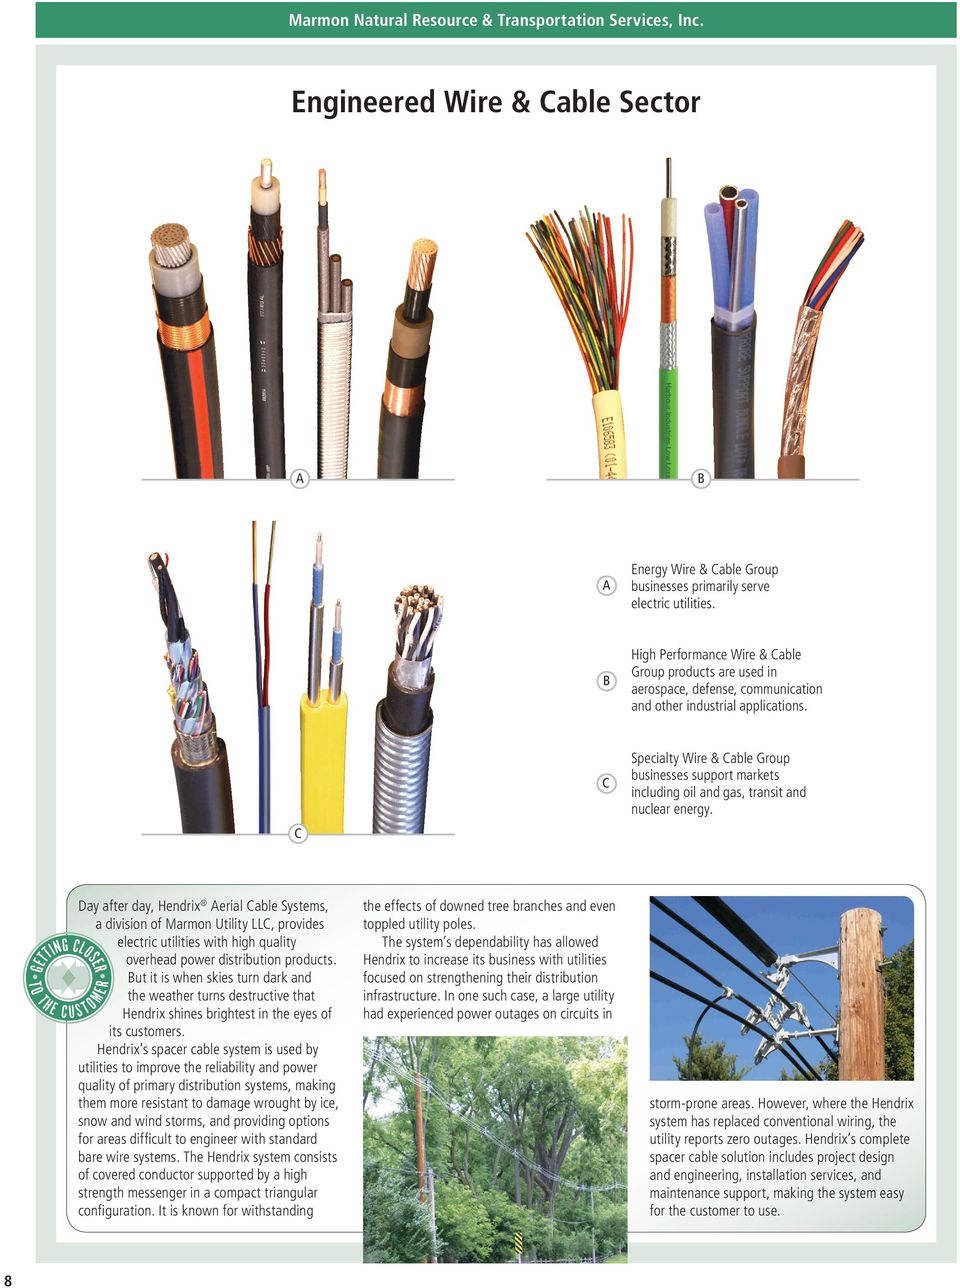 Marmon Is Our Kind Of Company Pdf Ems Wiring Systems Pte Ltd C Specialty Wire Cable Group Businesses Support Markets Including Oil And Gas Transit